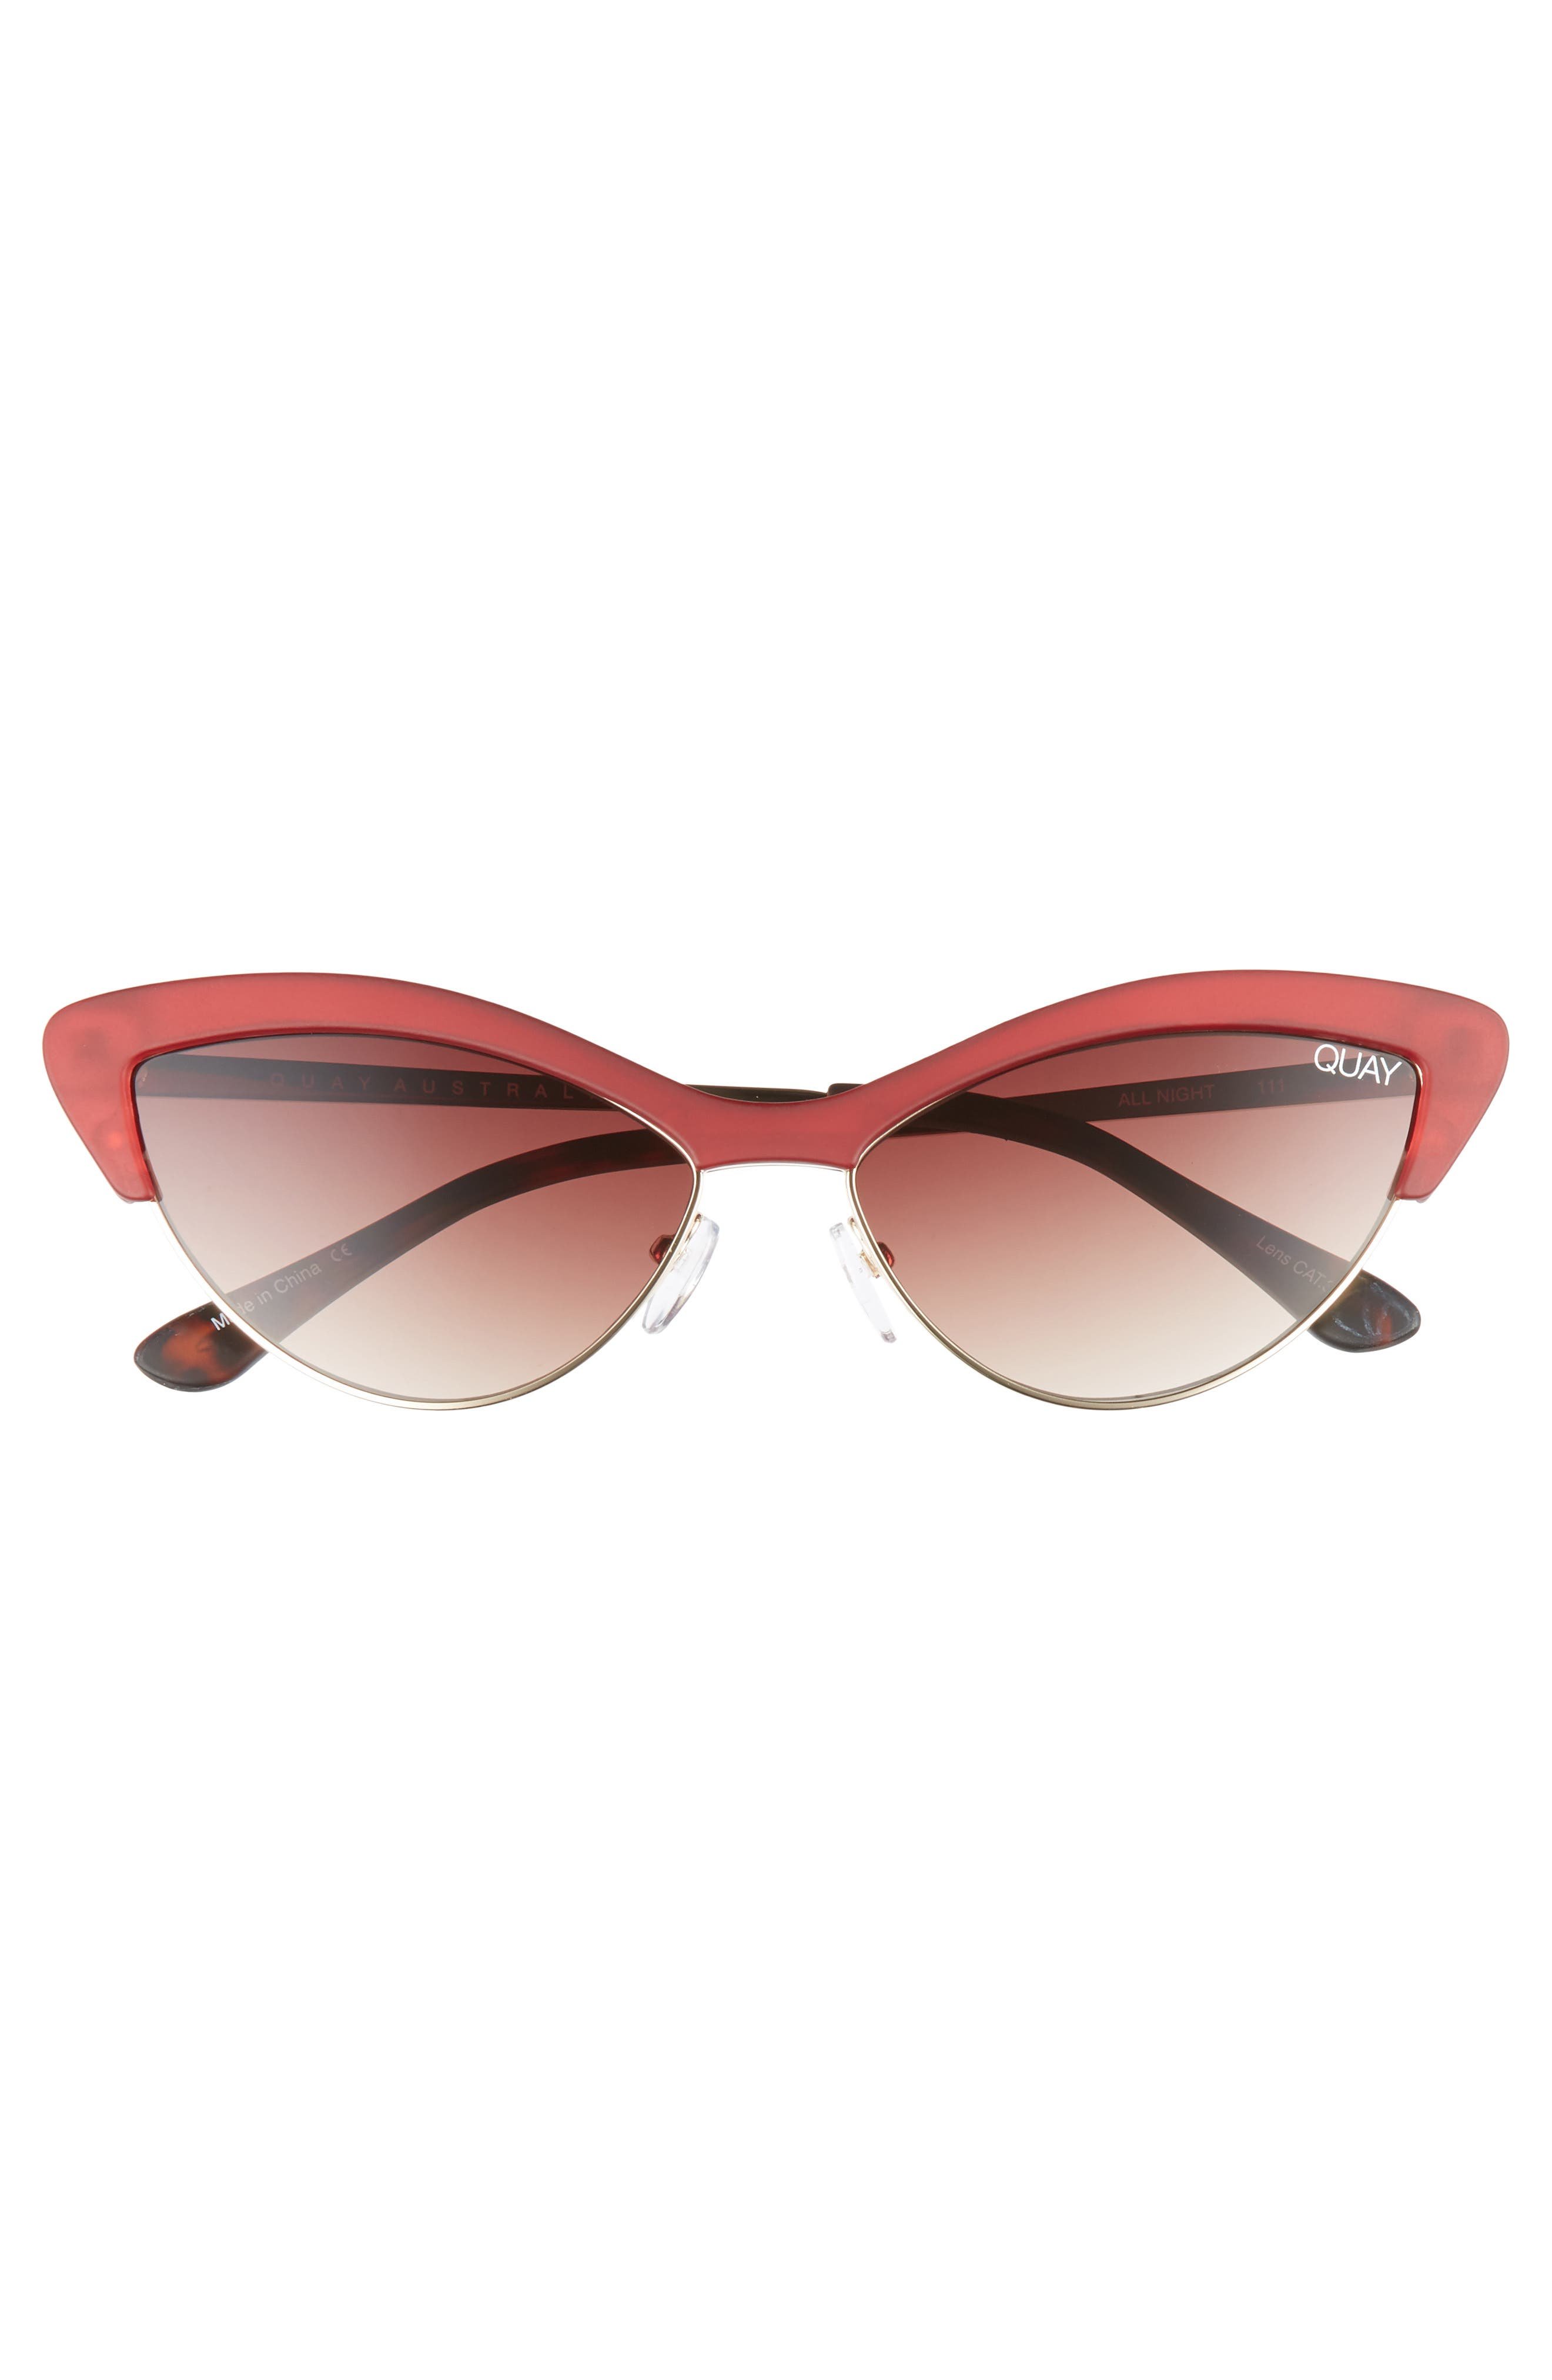 All Night 60mm Cat Eye Sunglasses,                             Alternate thumbnail 3, color,                             RED/ BROWN